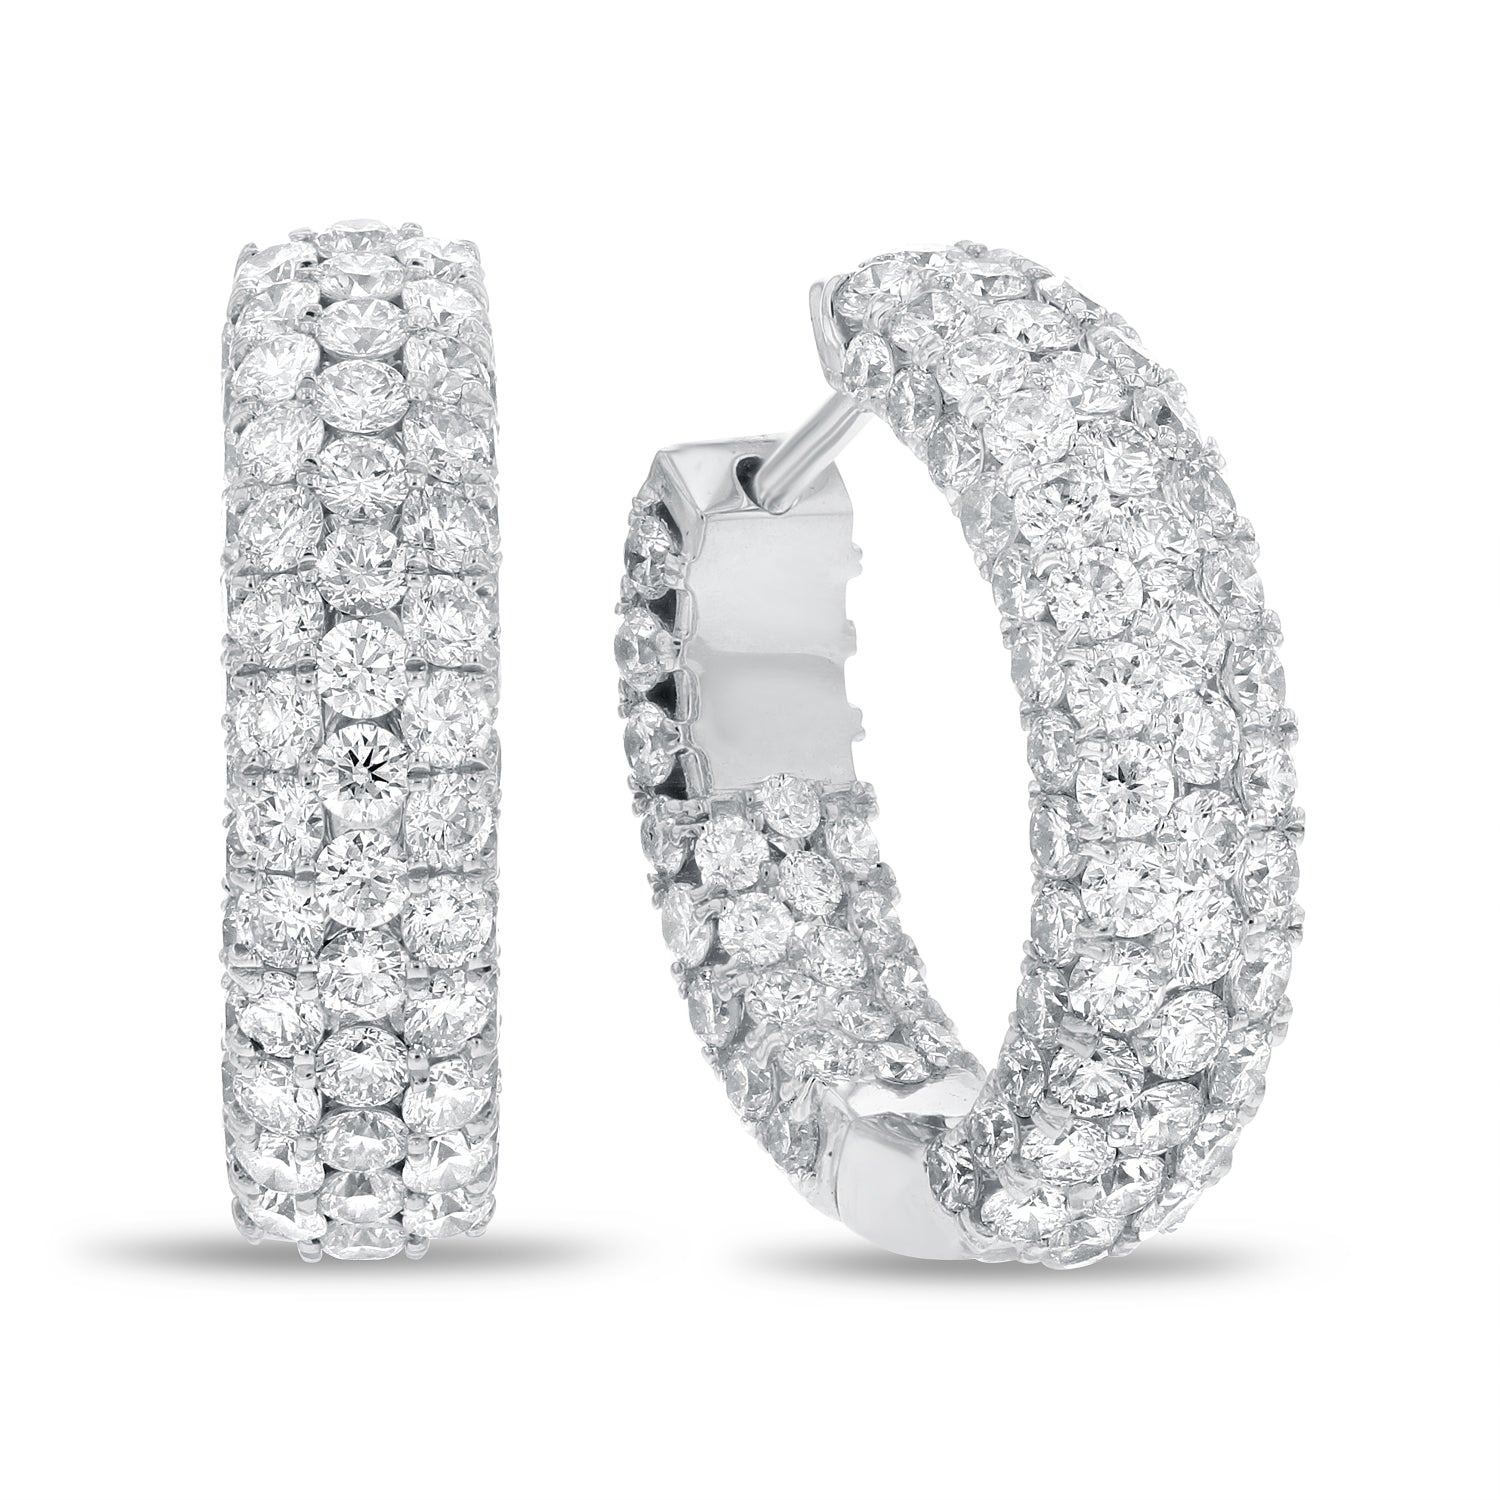 18K White Gold Hoop Earrings, 6.63 Carats